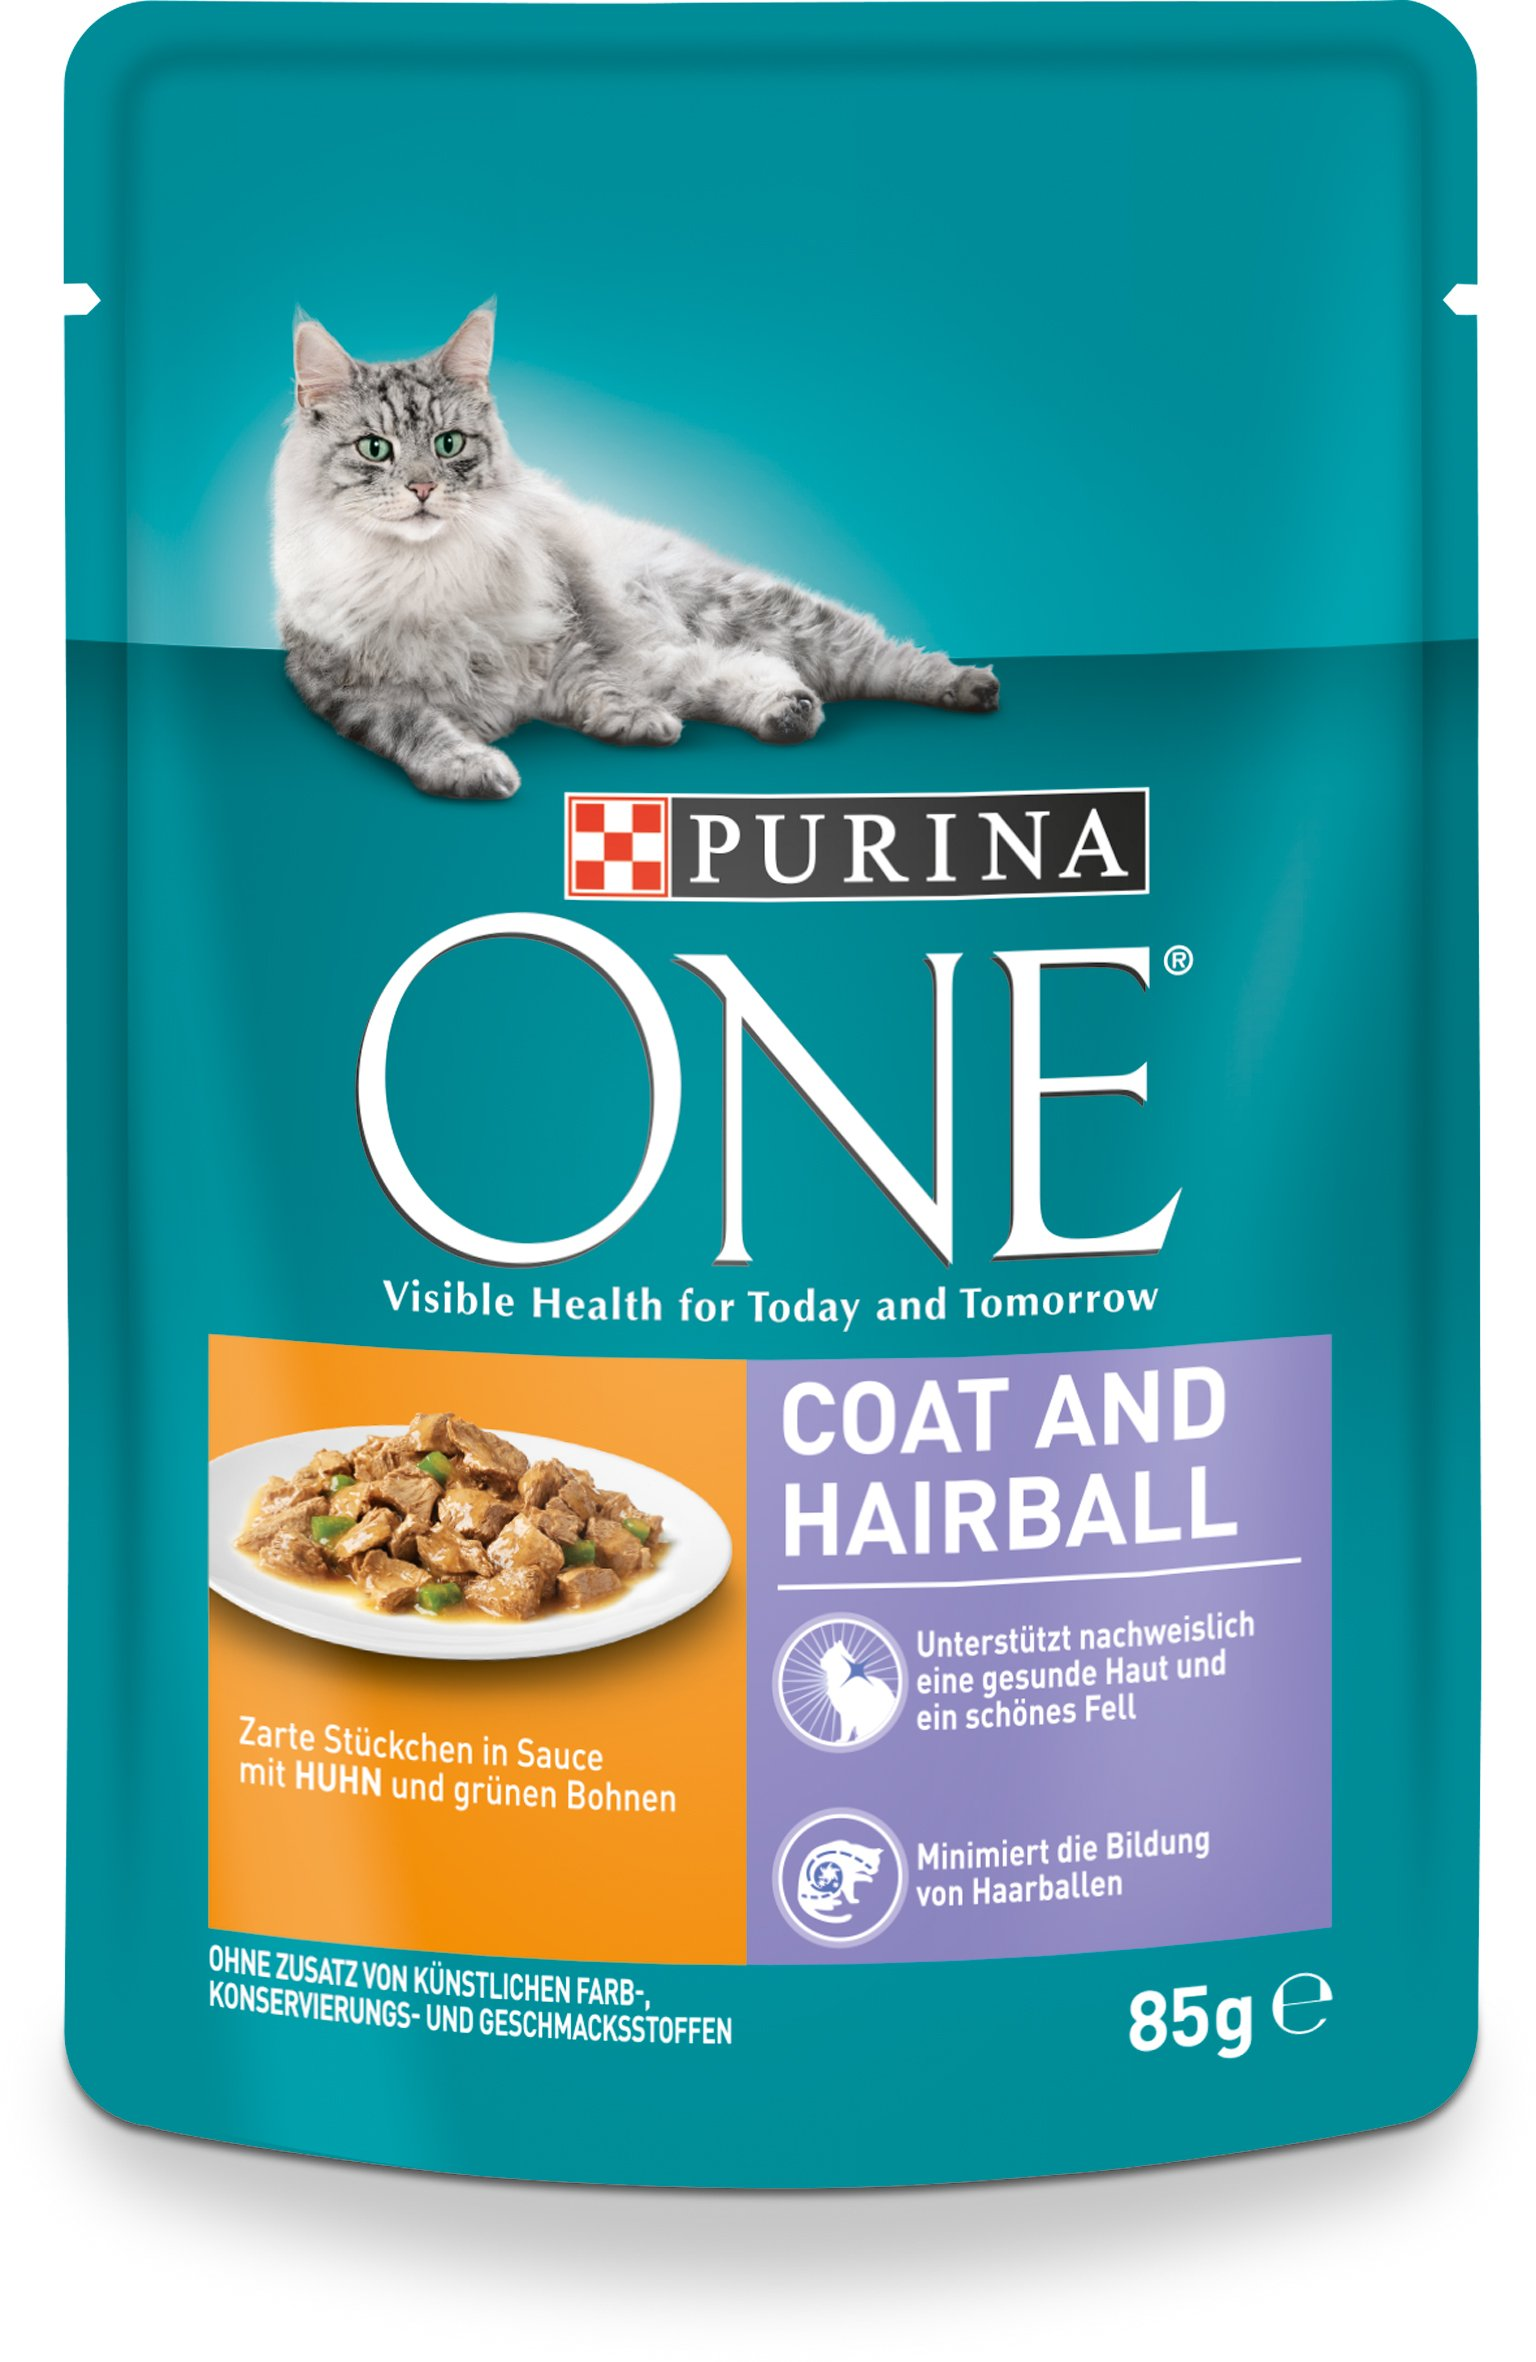 Purina One Cat Wet Food Coat & Hair Ball with Chicken and Green Beans 24x85g